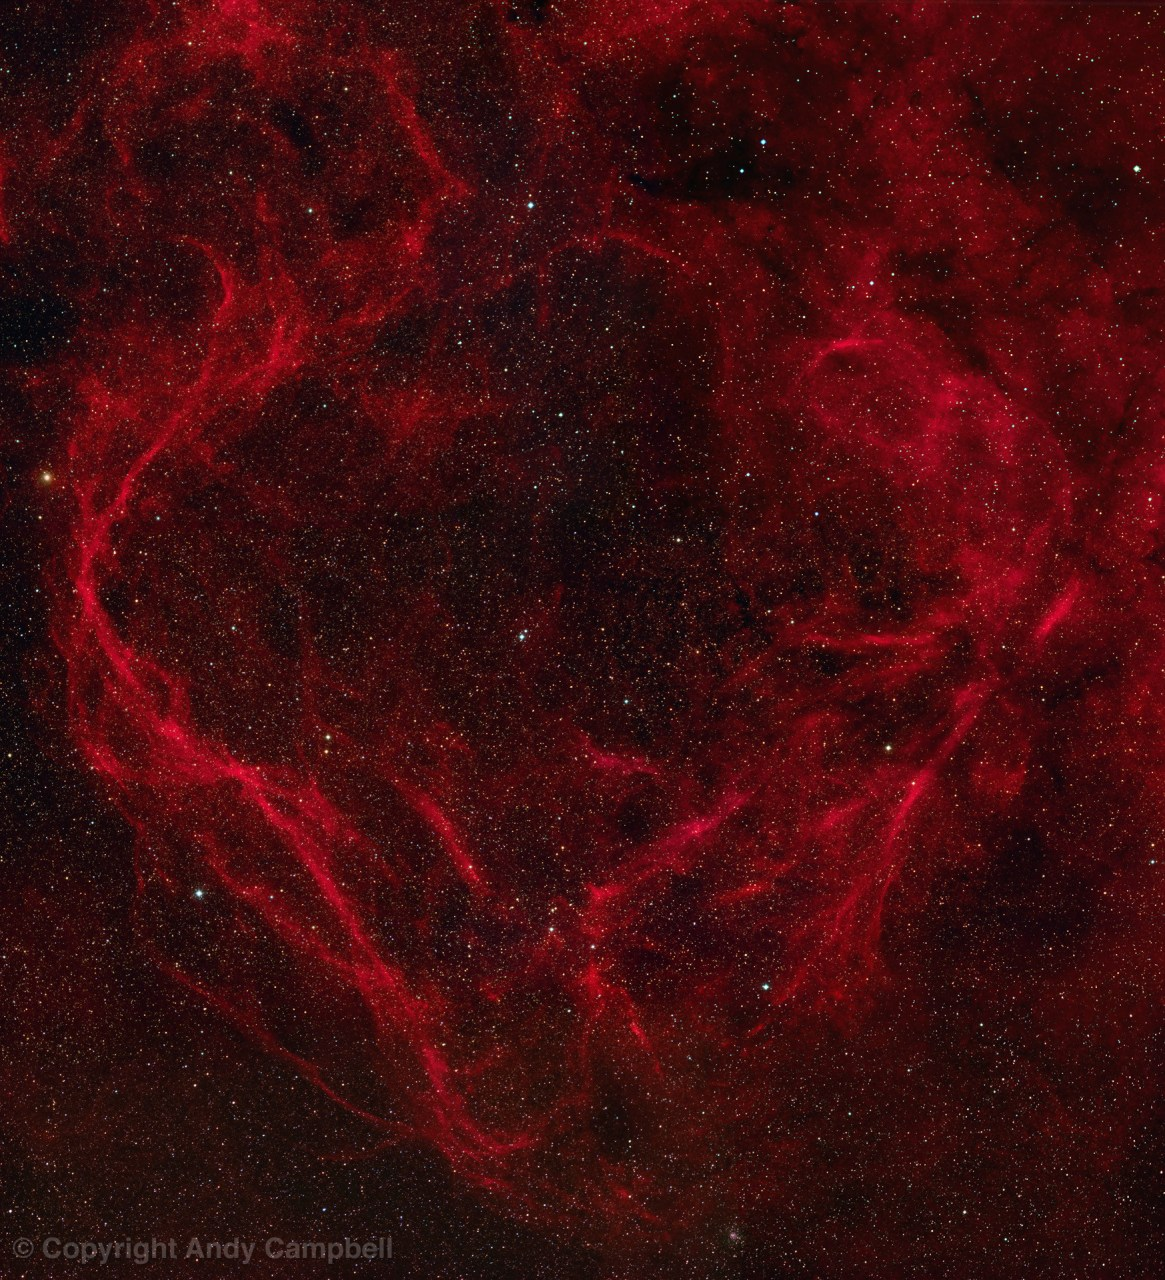 supernova remnant RCW114 in Ara narrowband image